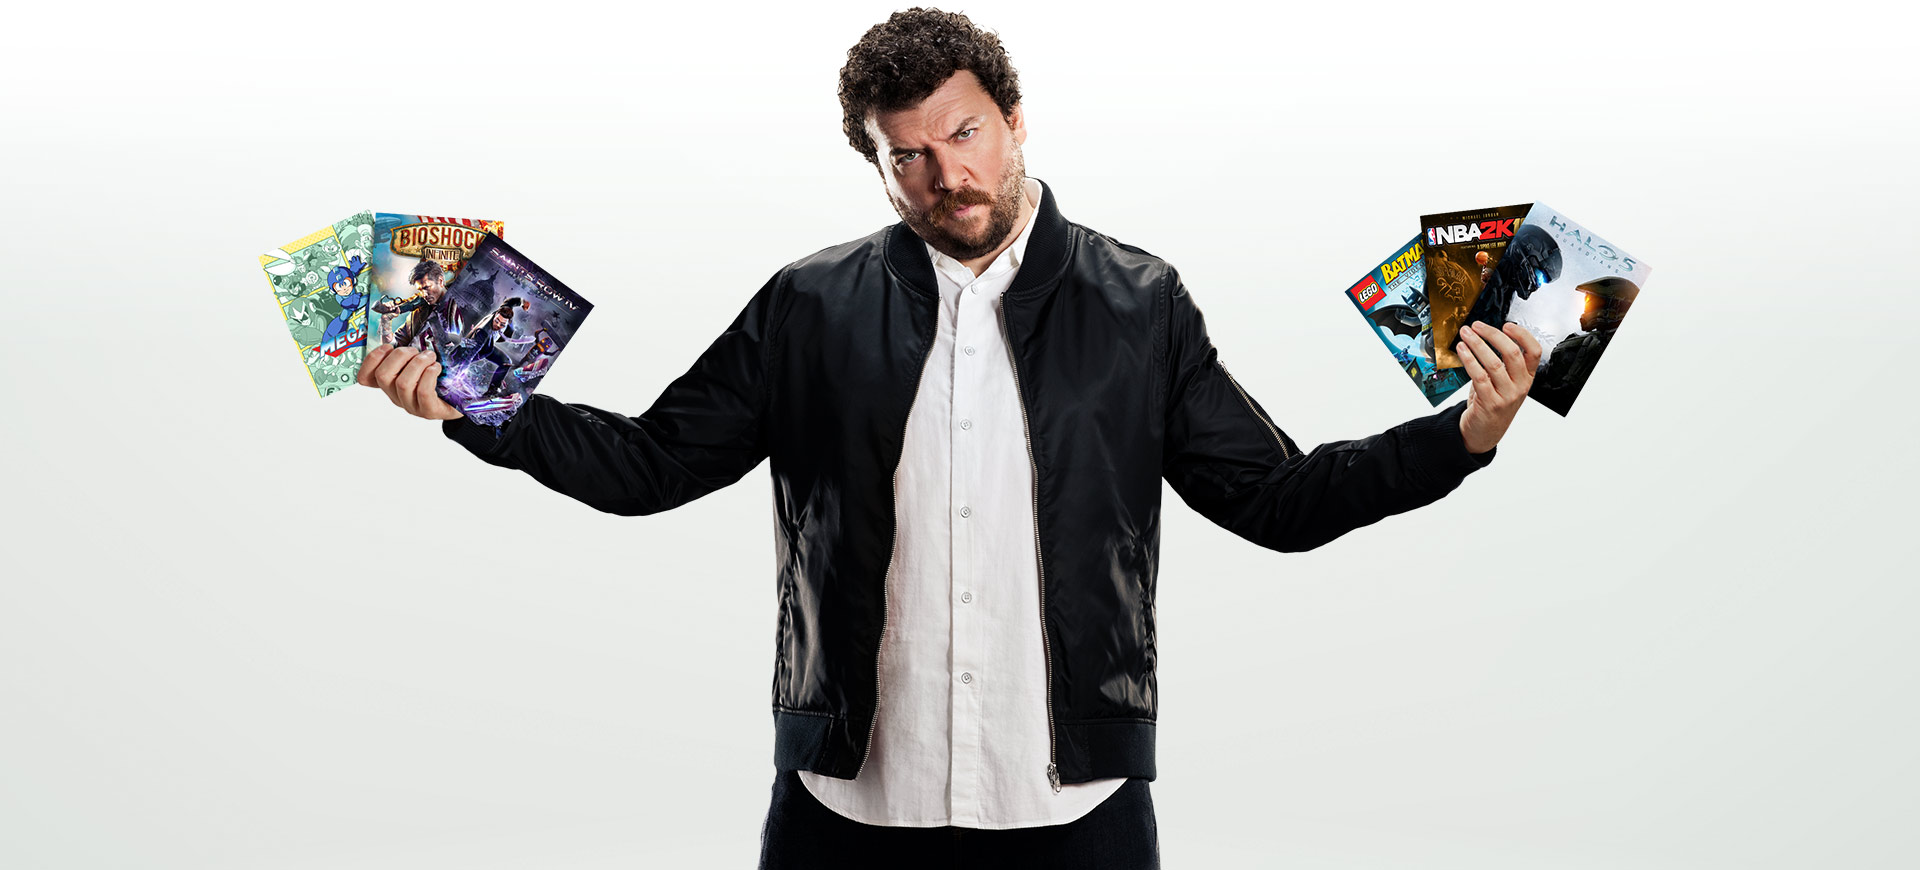 Danny McBride holding Xbox game pass games